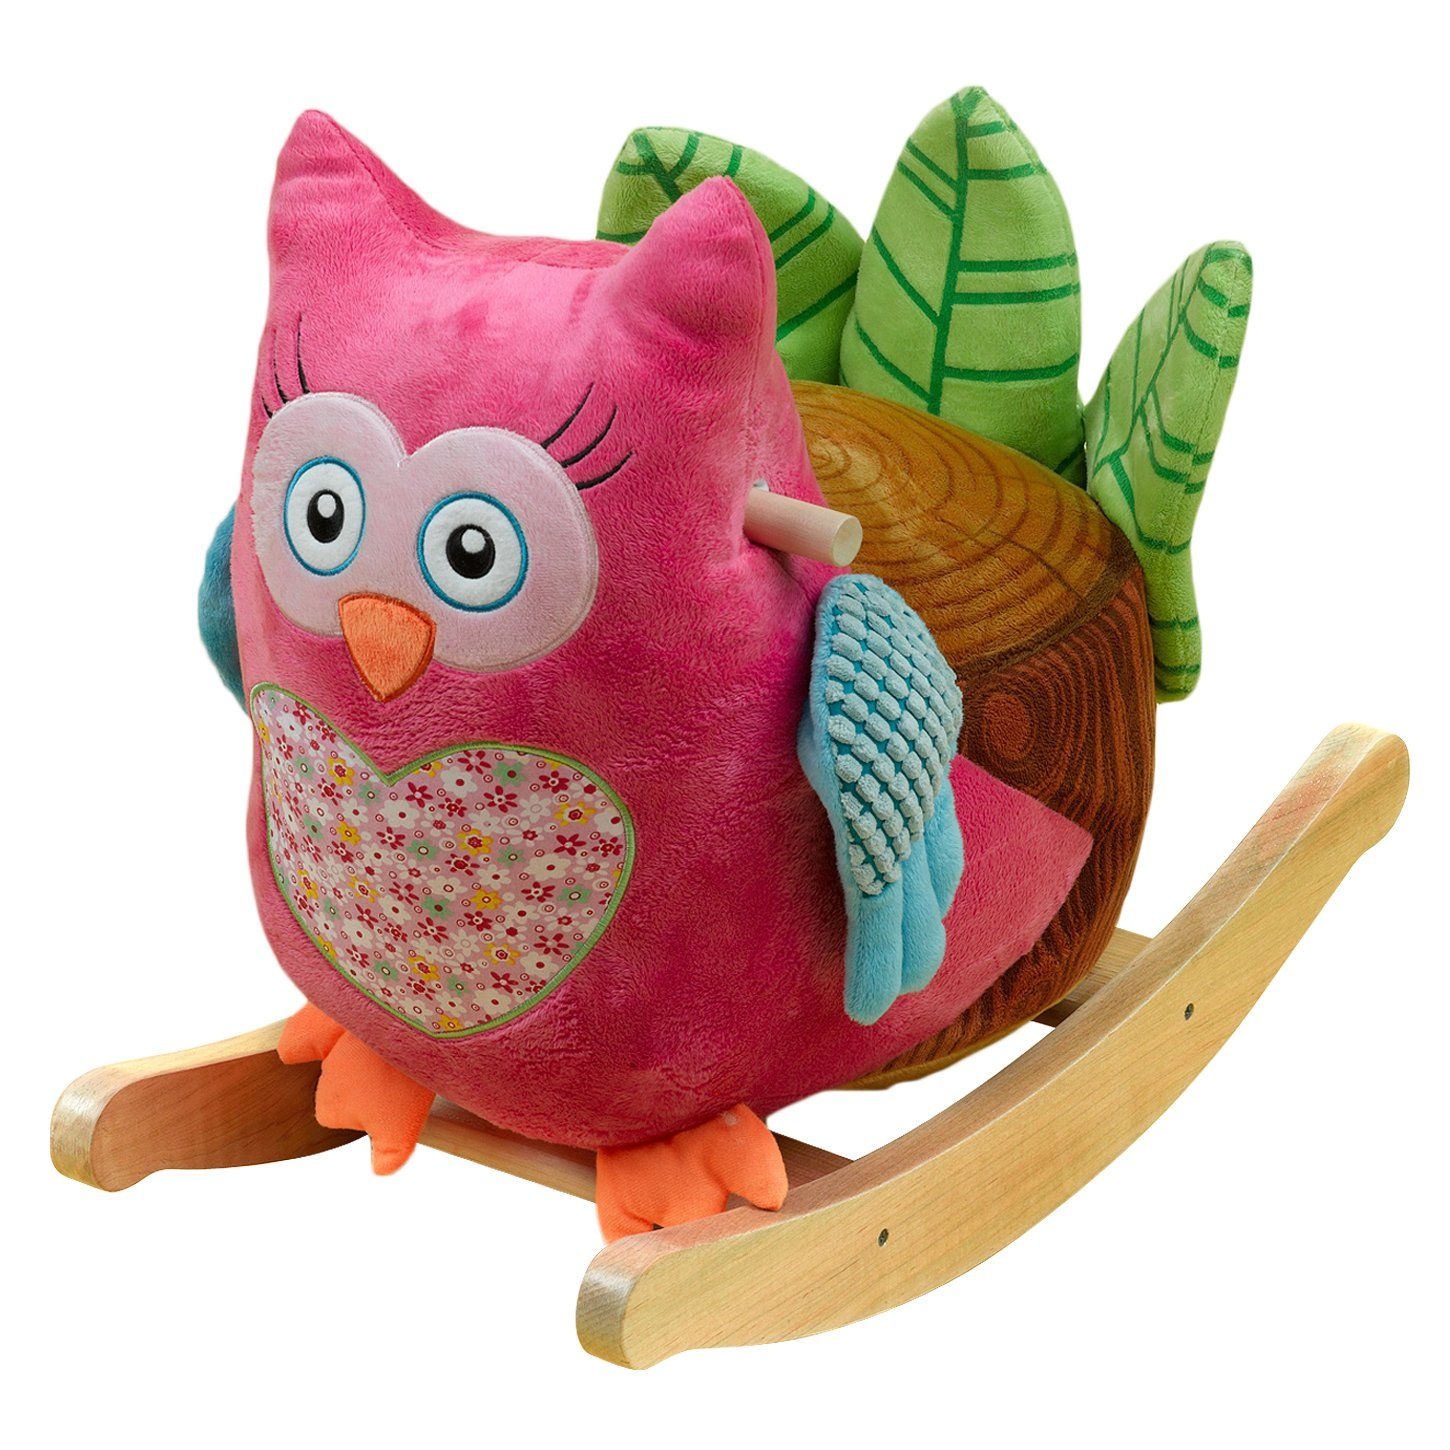 Best Toys For 1 Year Old Girls Cool Toys Toys For 1